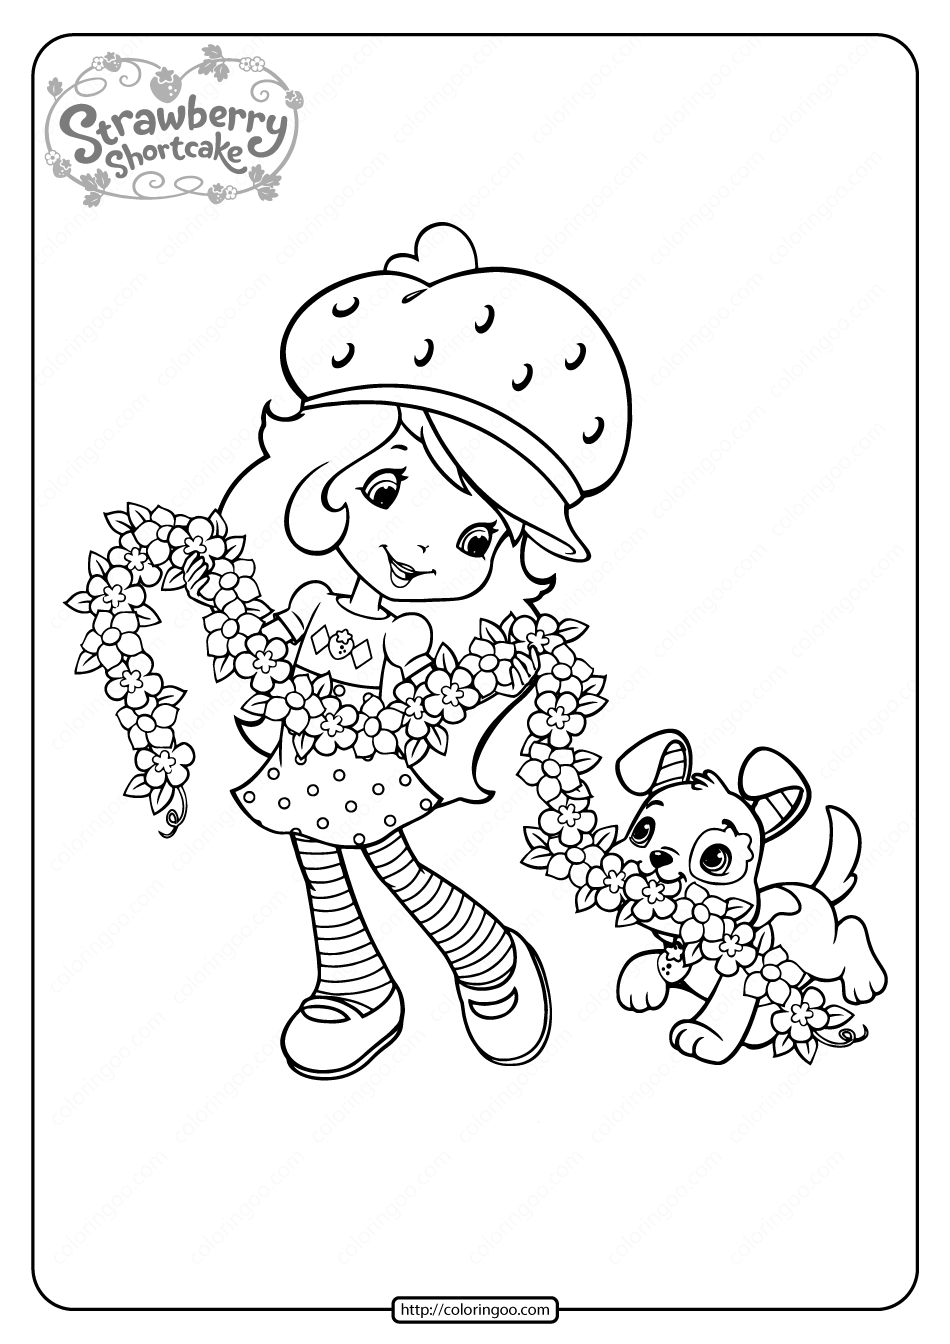 Printable Strawberry Shortcake Coloring Pages - 11